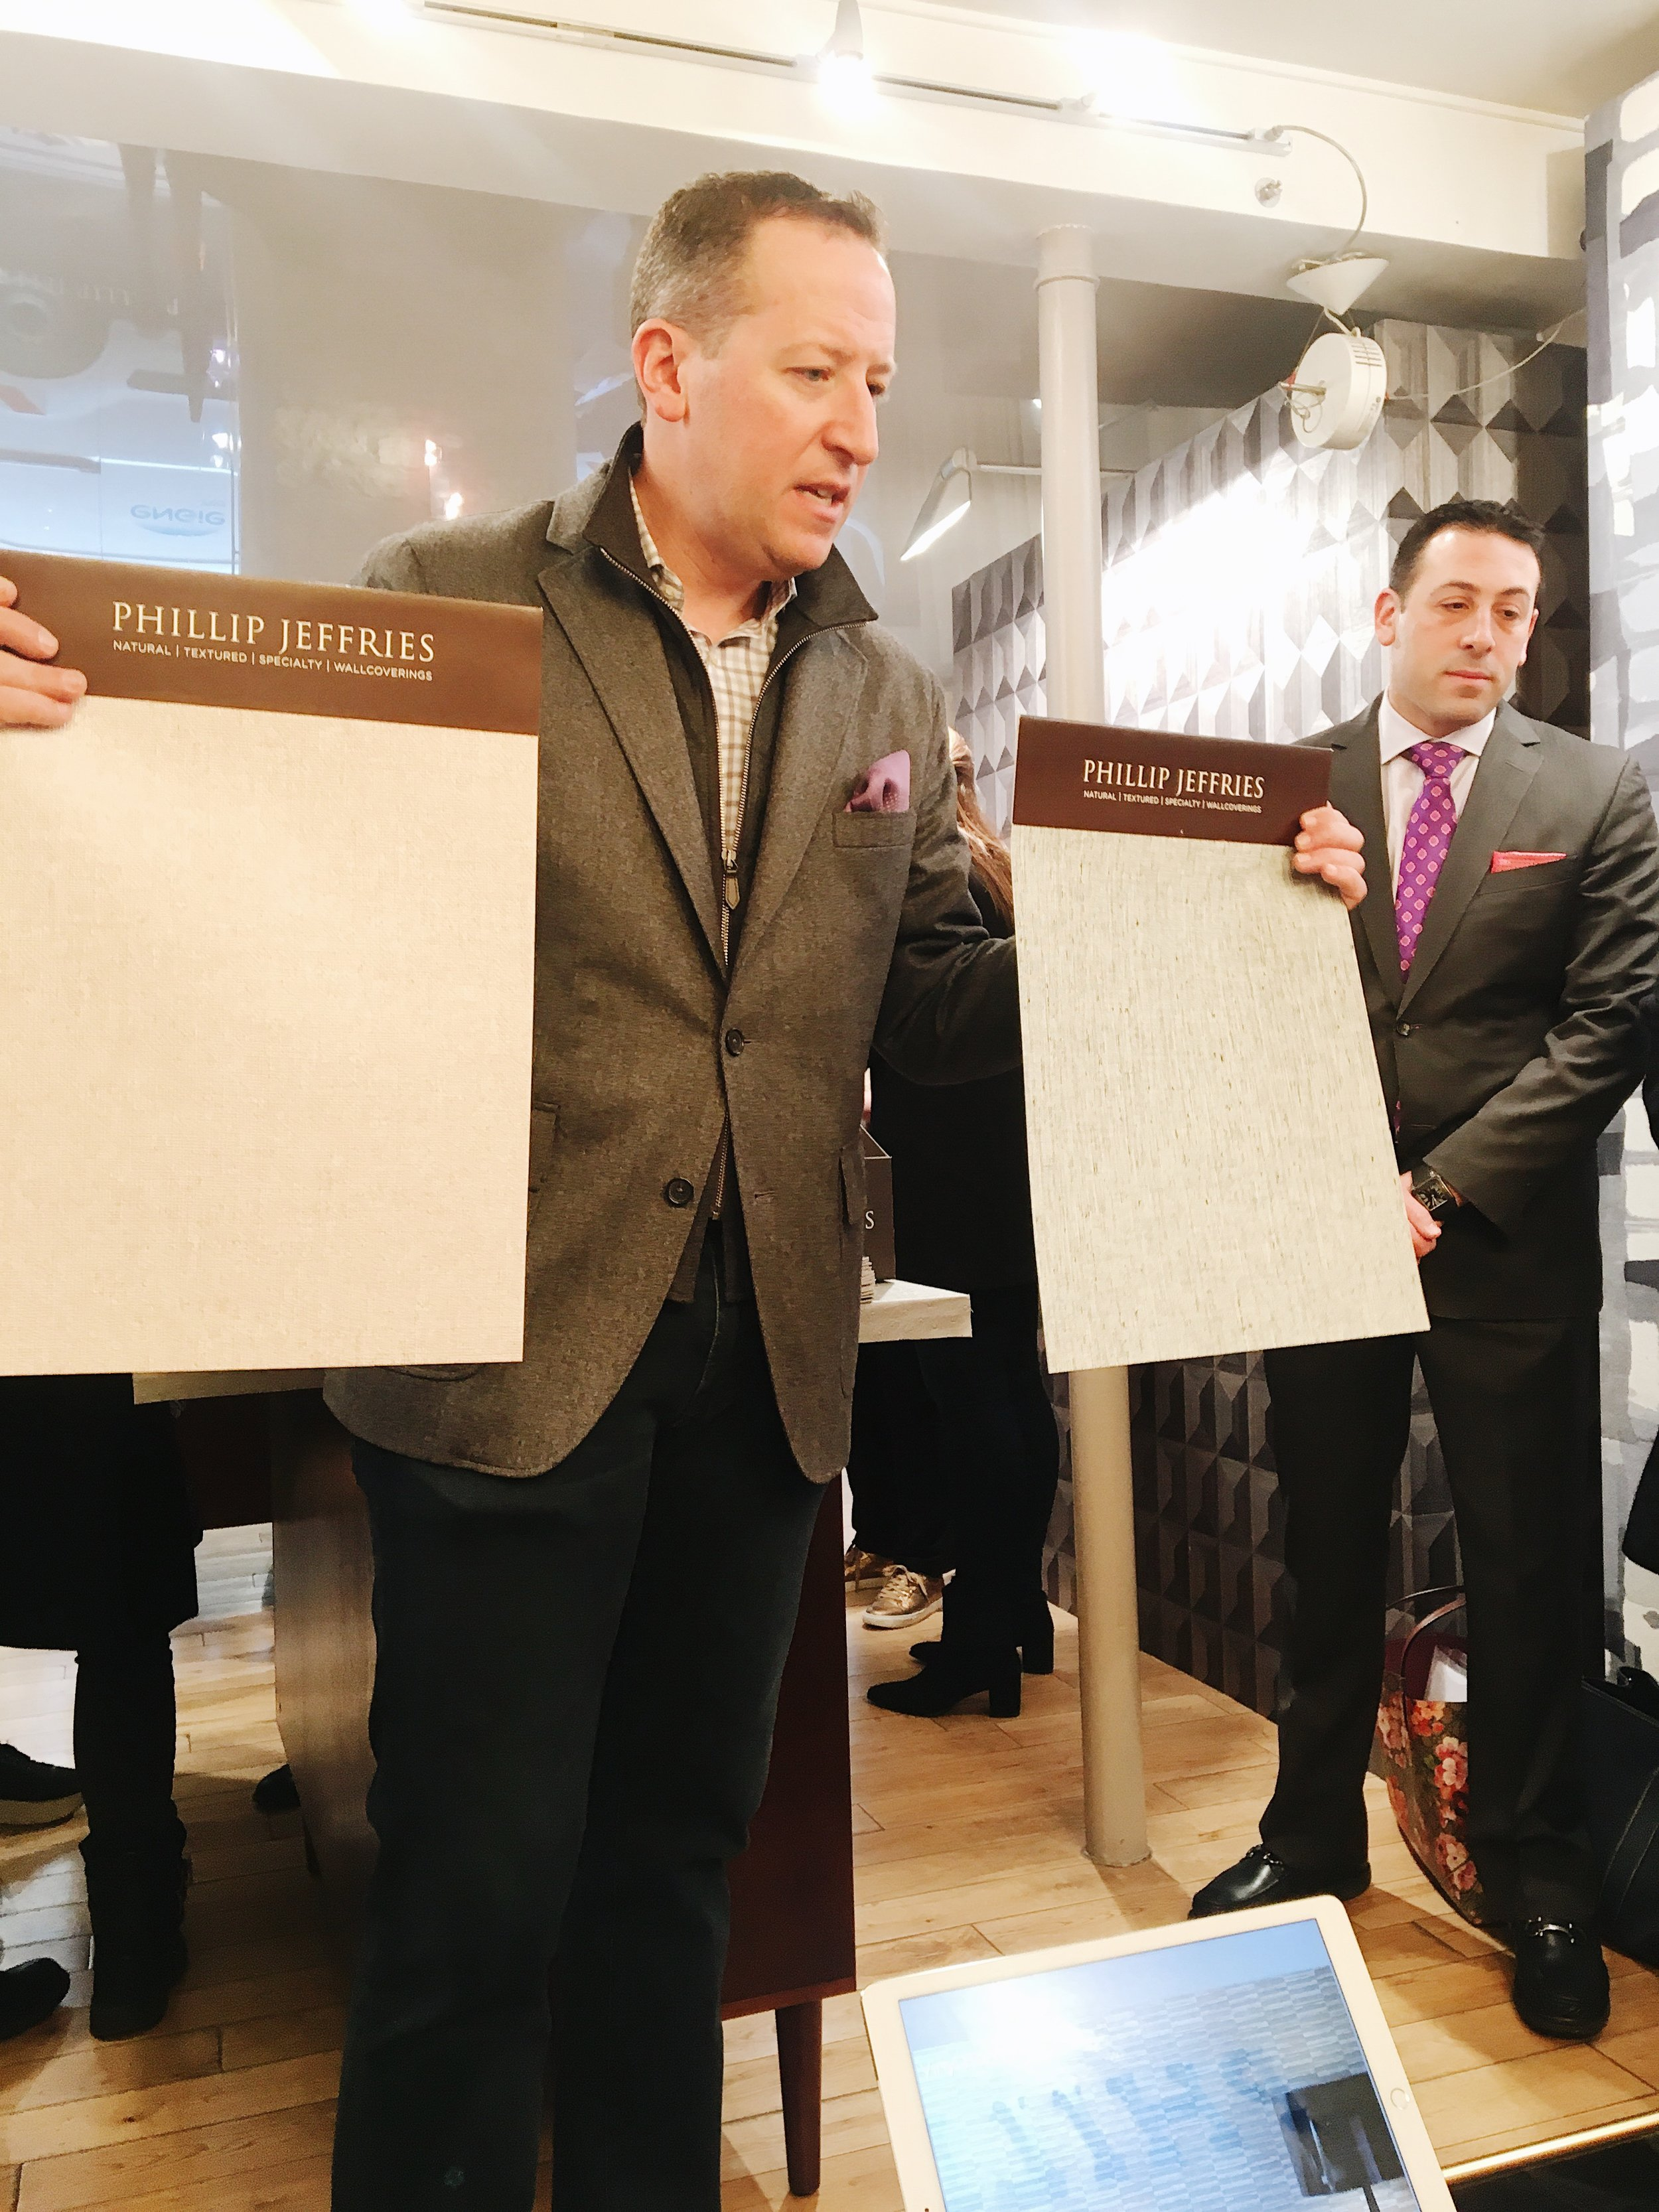 Paris Deco Off: Philip & Jeffrey (from PhillipJeffries)presenting their new line of wall coverings to our Chicago design community -Special thank you to the Holly Hunt design team!